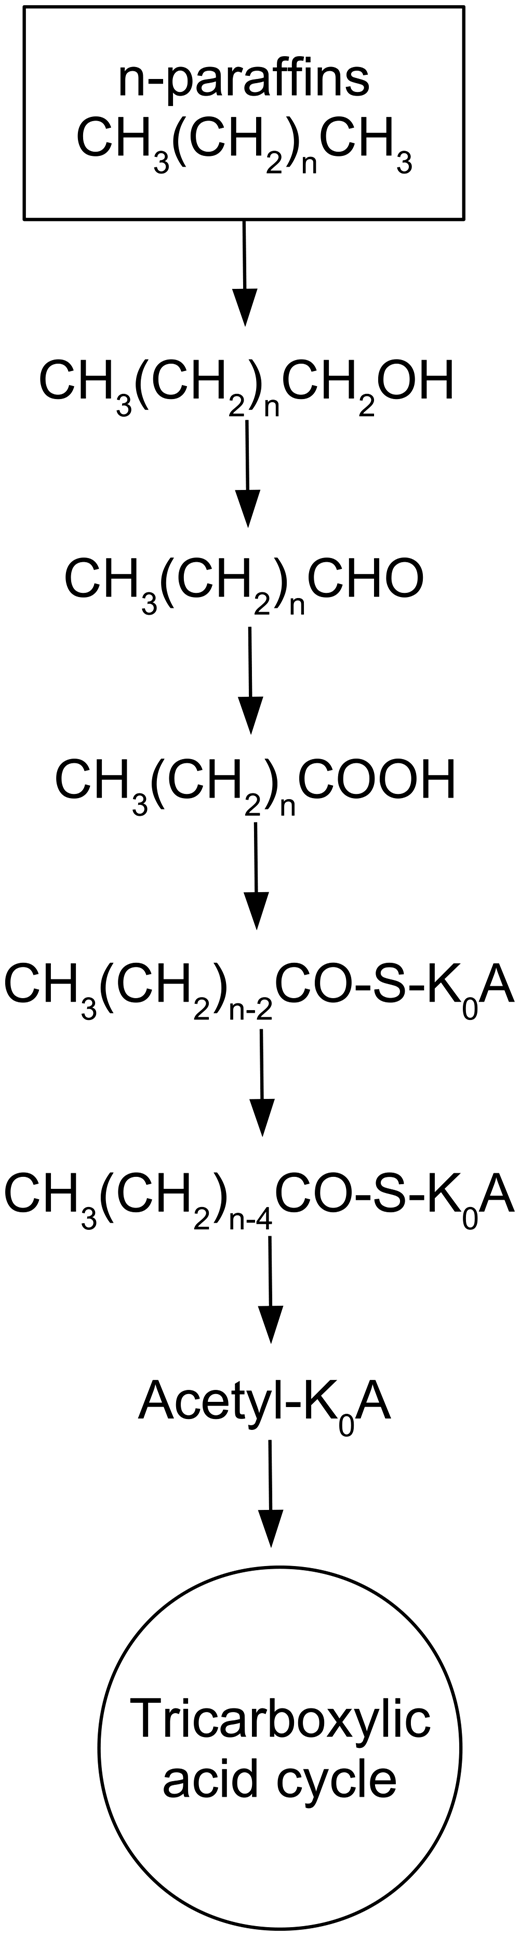 Scheme of paraffin oxidizing.